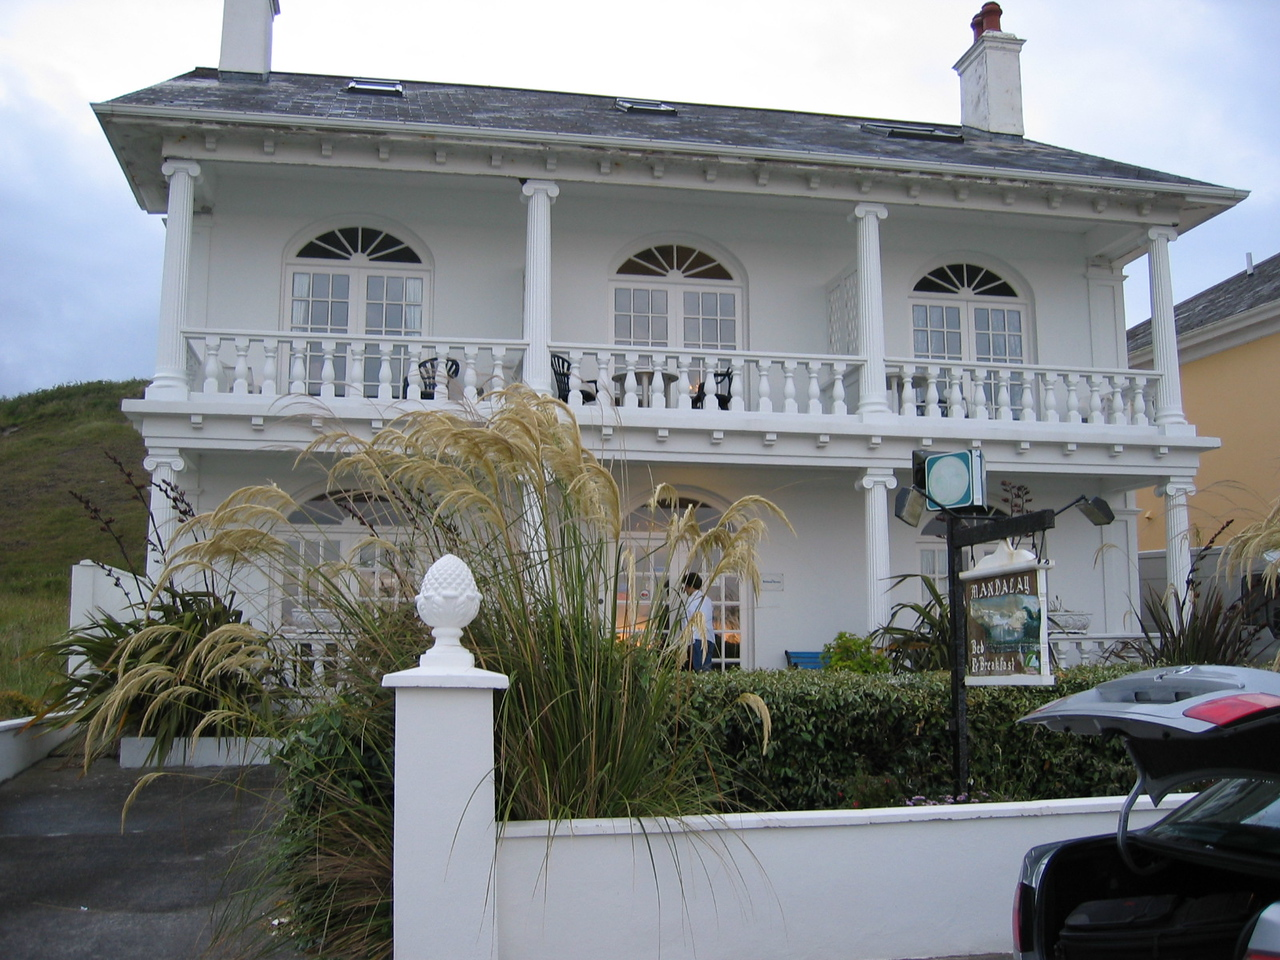 Mandalay by the Sea B&B, Galway, County Galway